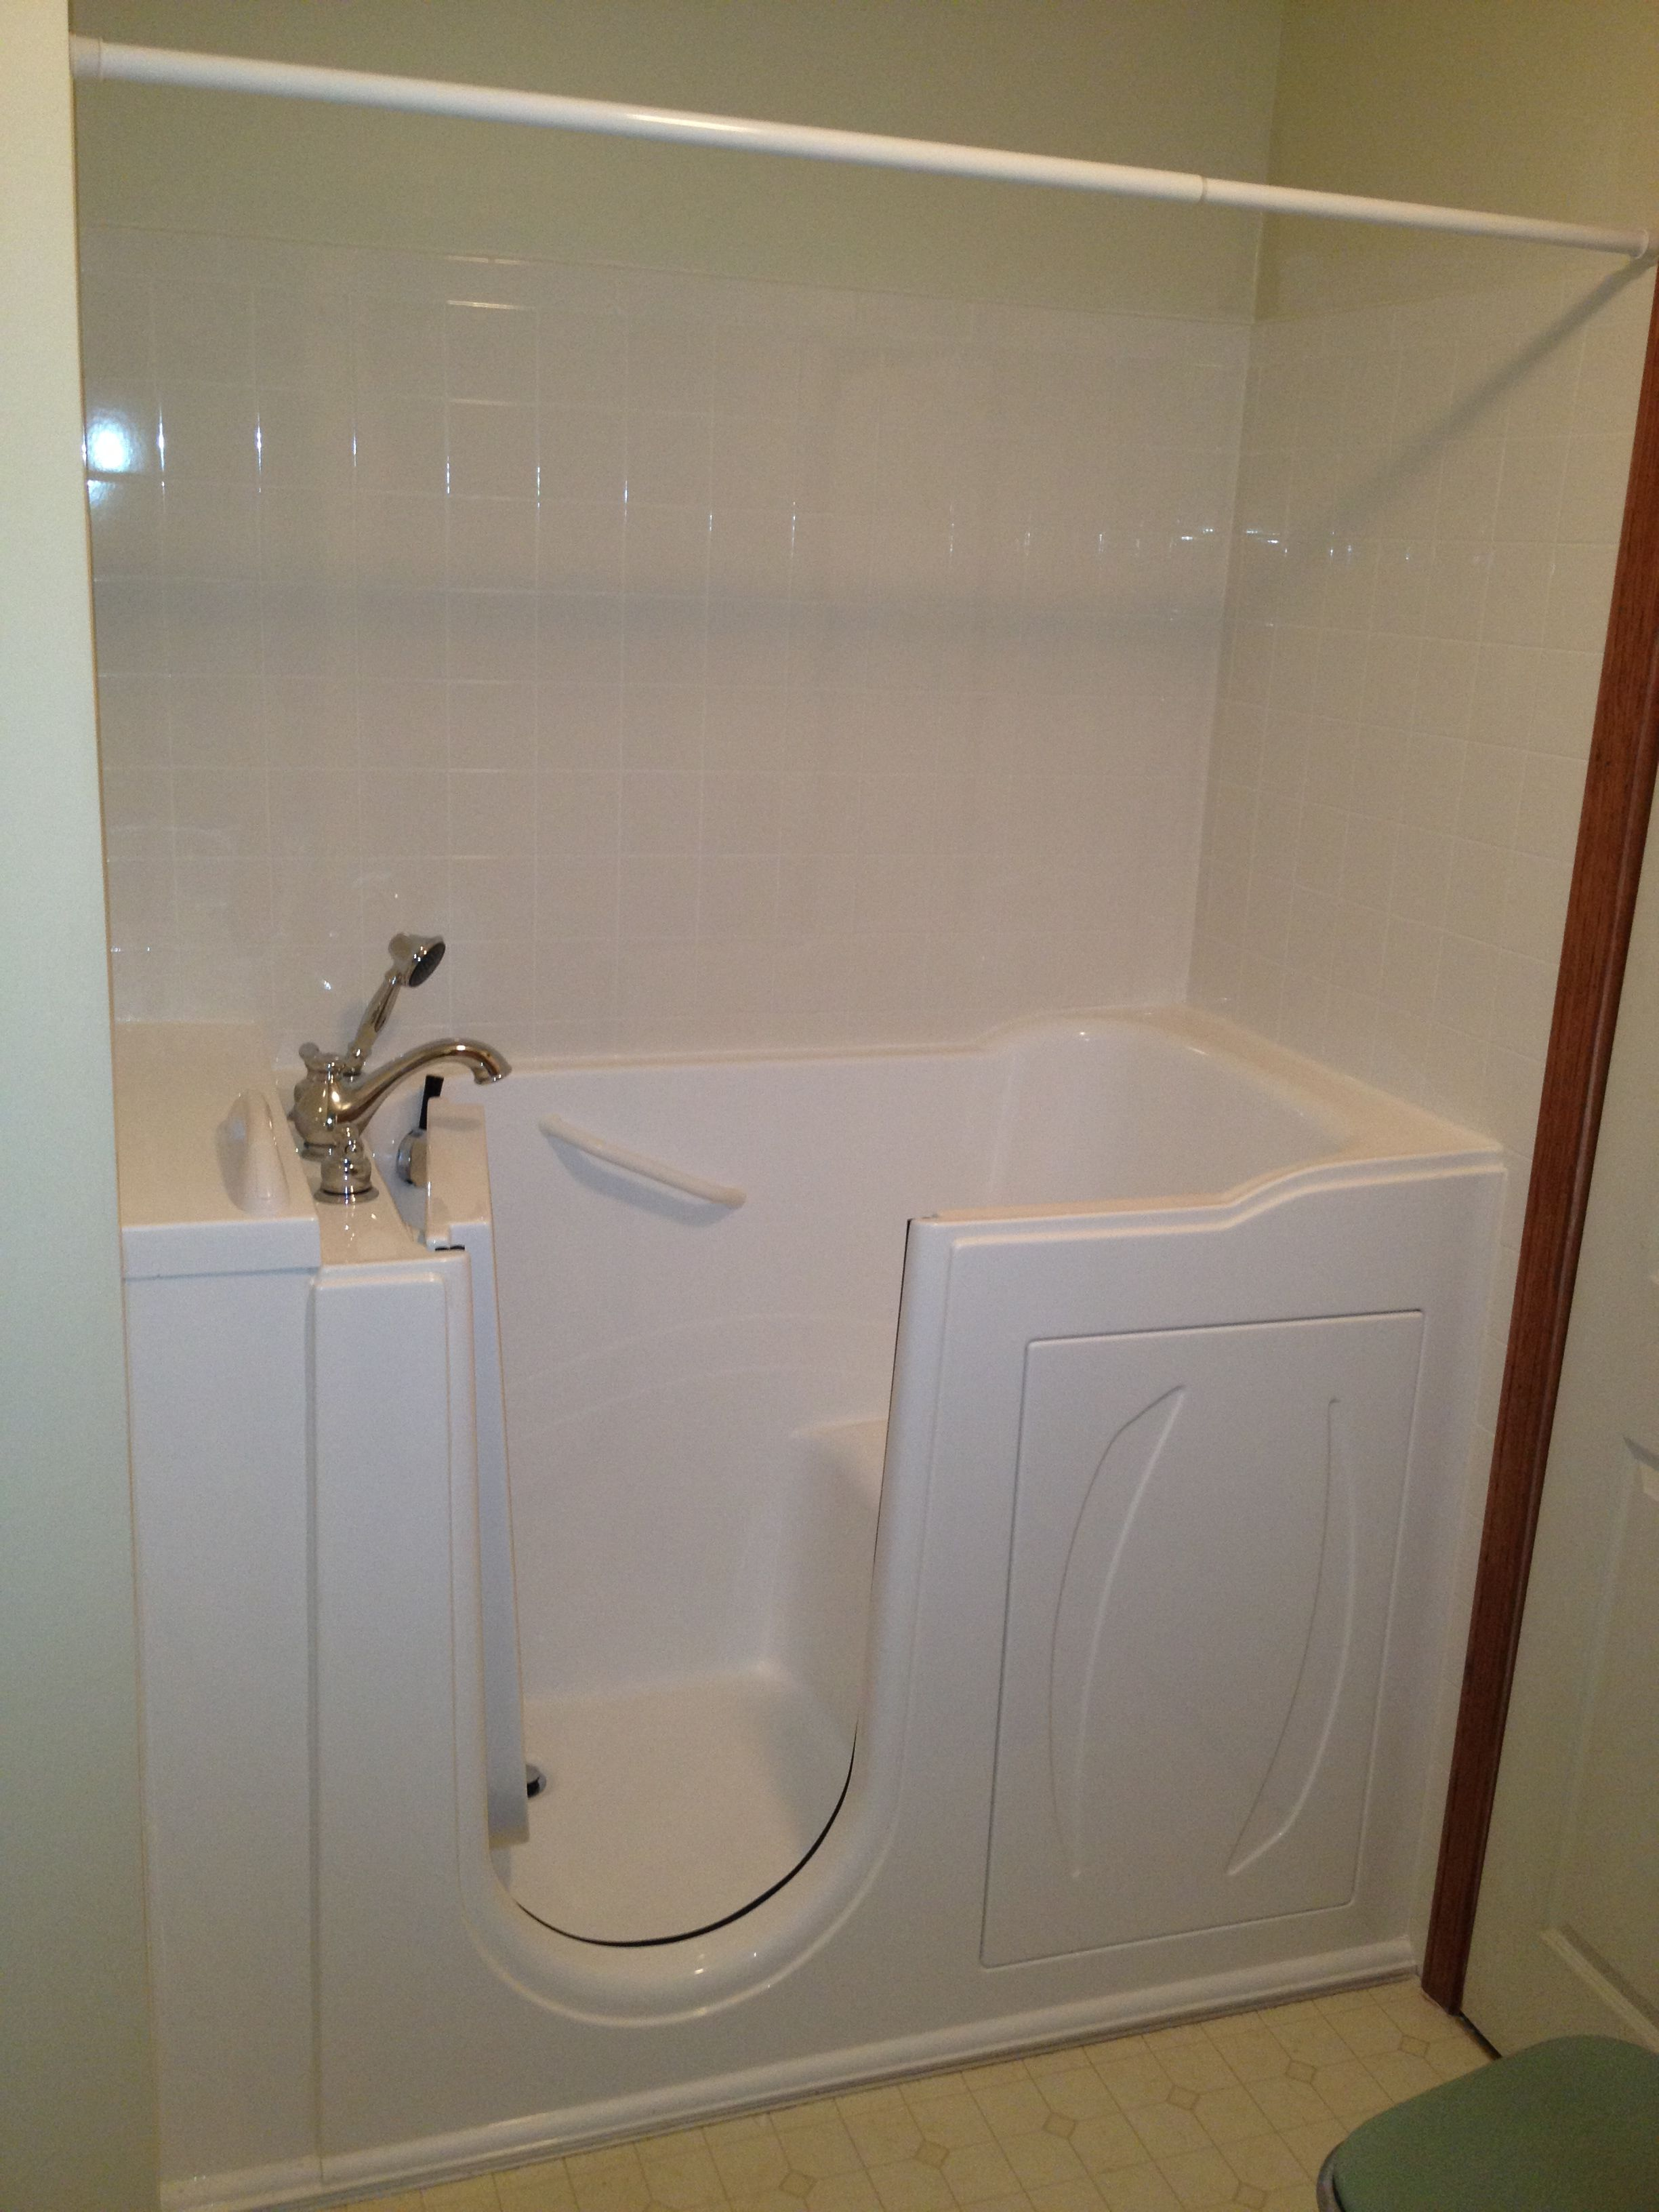 Serenity WalkIn Bathtubs come with an Adjustable Shower Slide Bar The adjustable shower slide